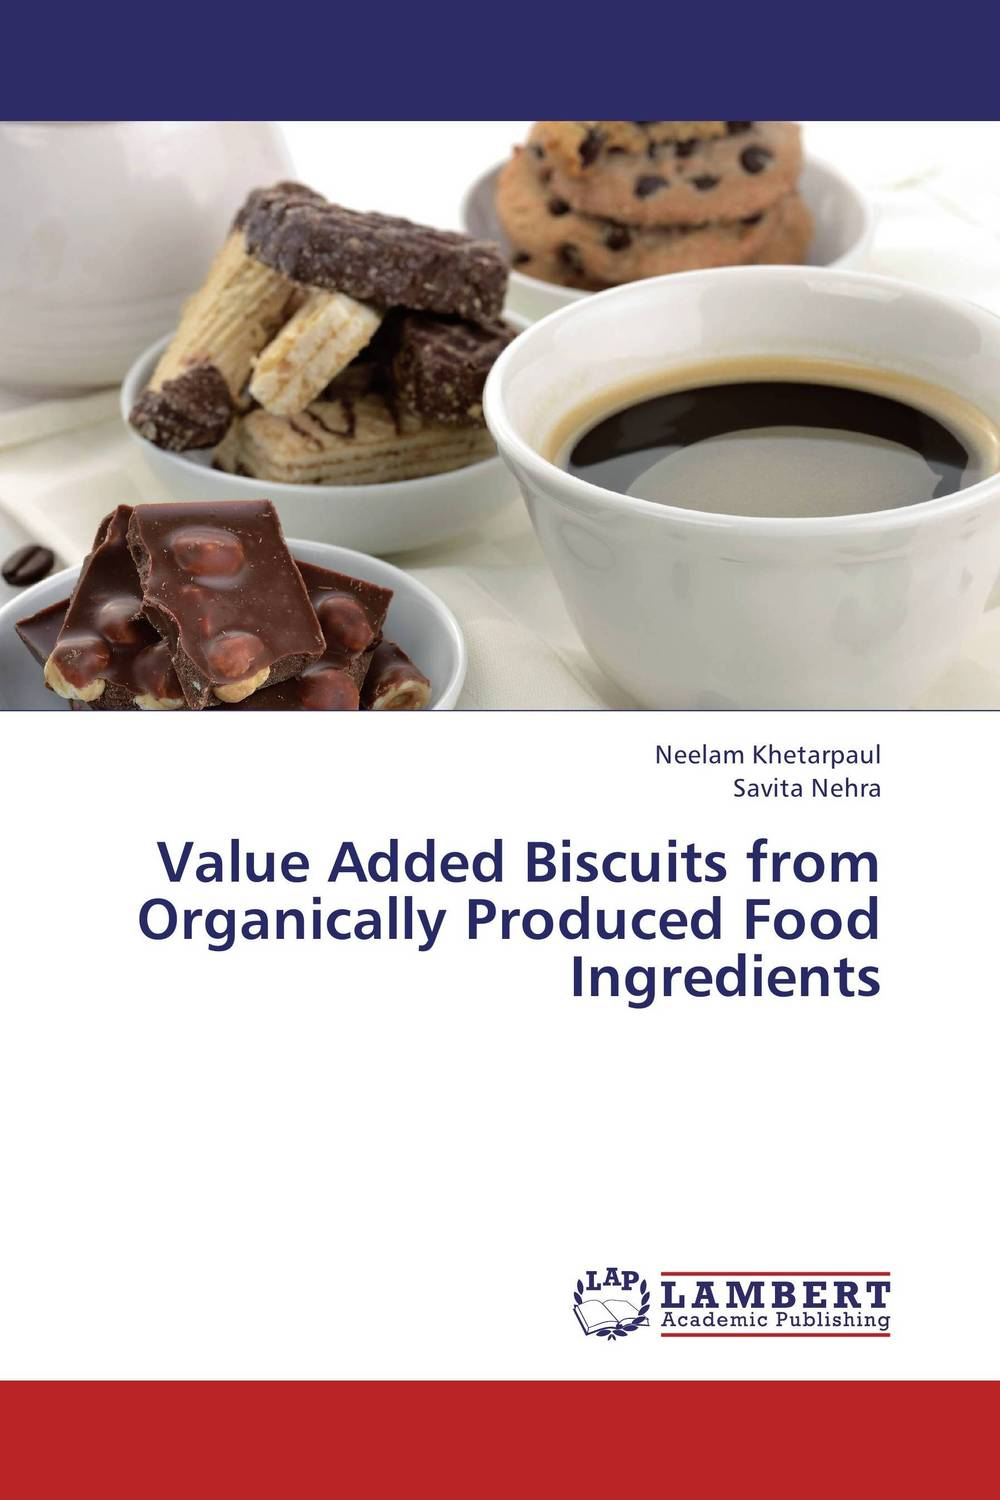 Value Added Biscuits from Organically Produced Food Ingredients